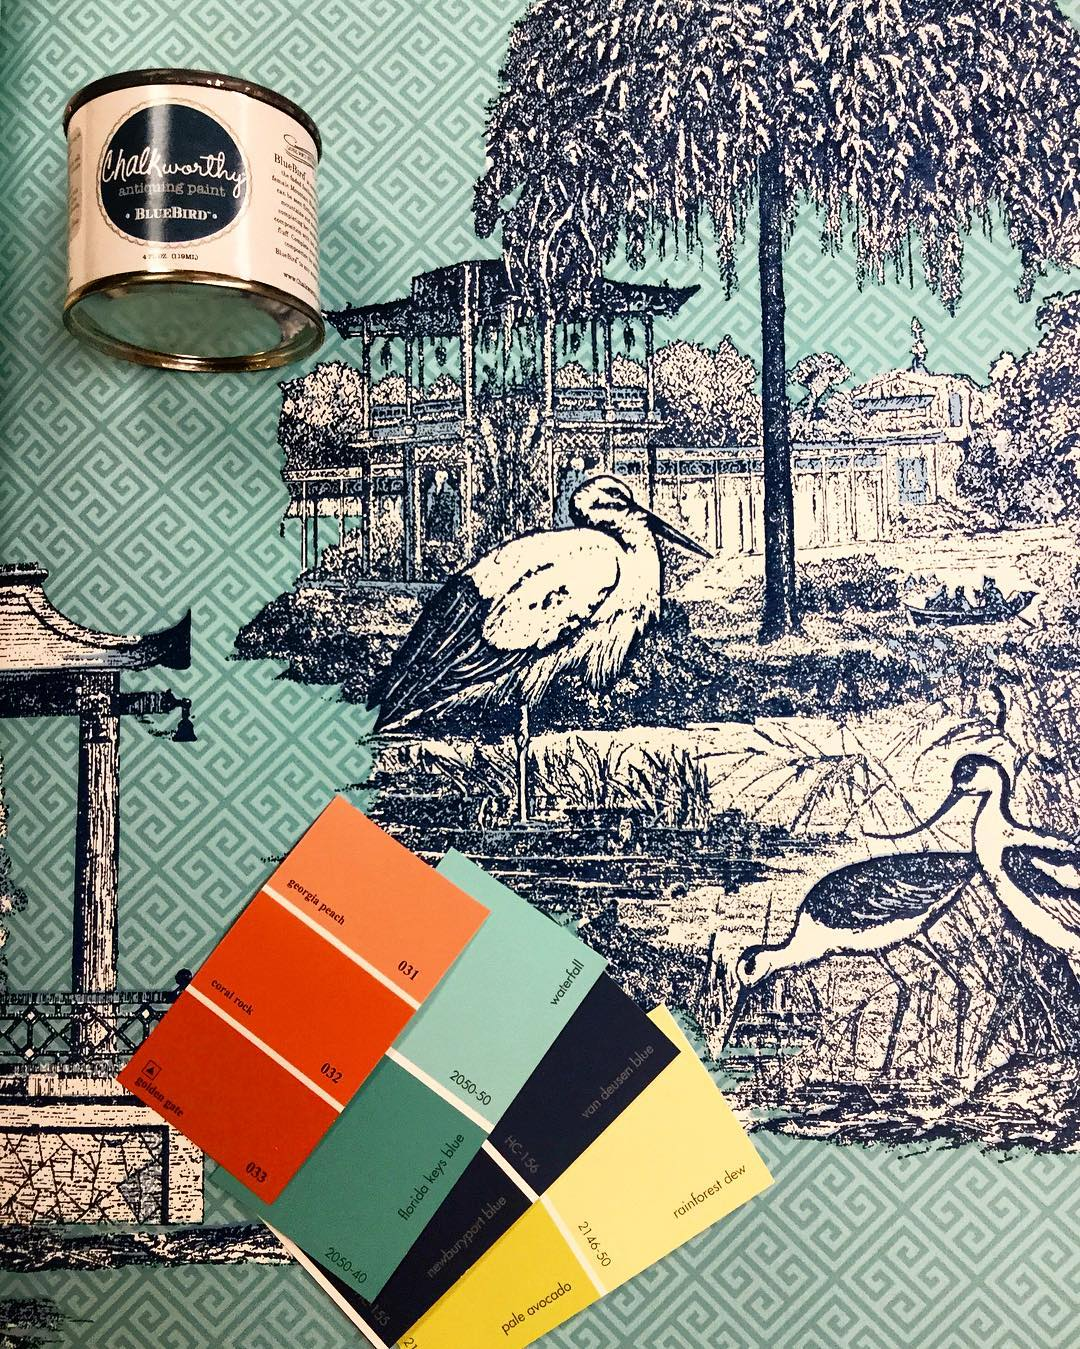 Buhrmester-Paint-on-Instagram-%E2%80%9CBirds-of-a-feather-flock-together-in-this-Asian-inspired-setting-wallpaper-wp424290